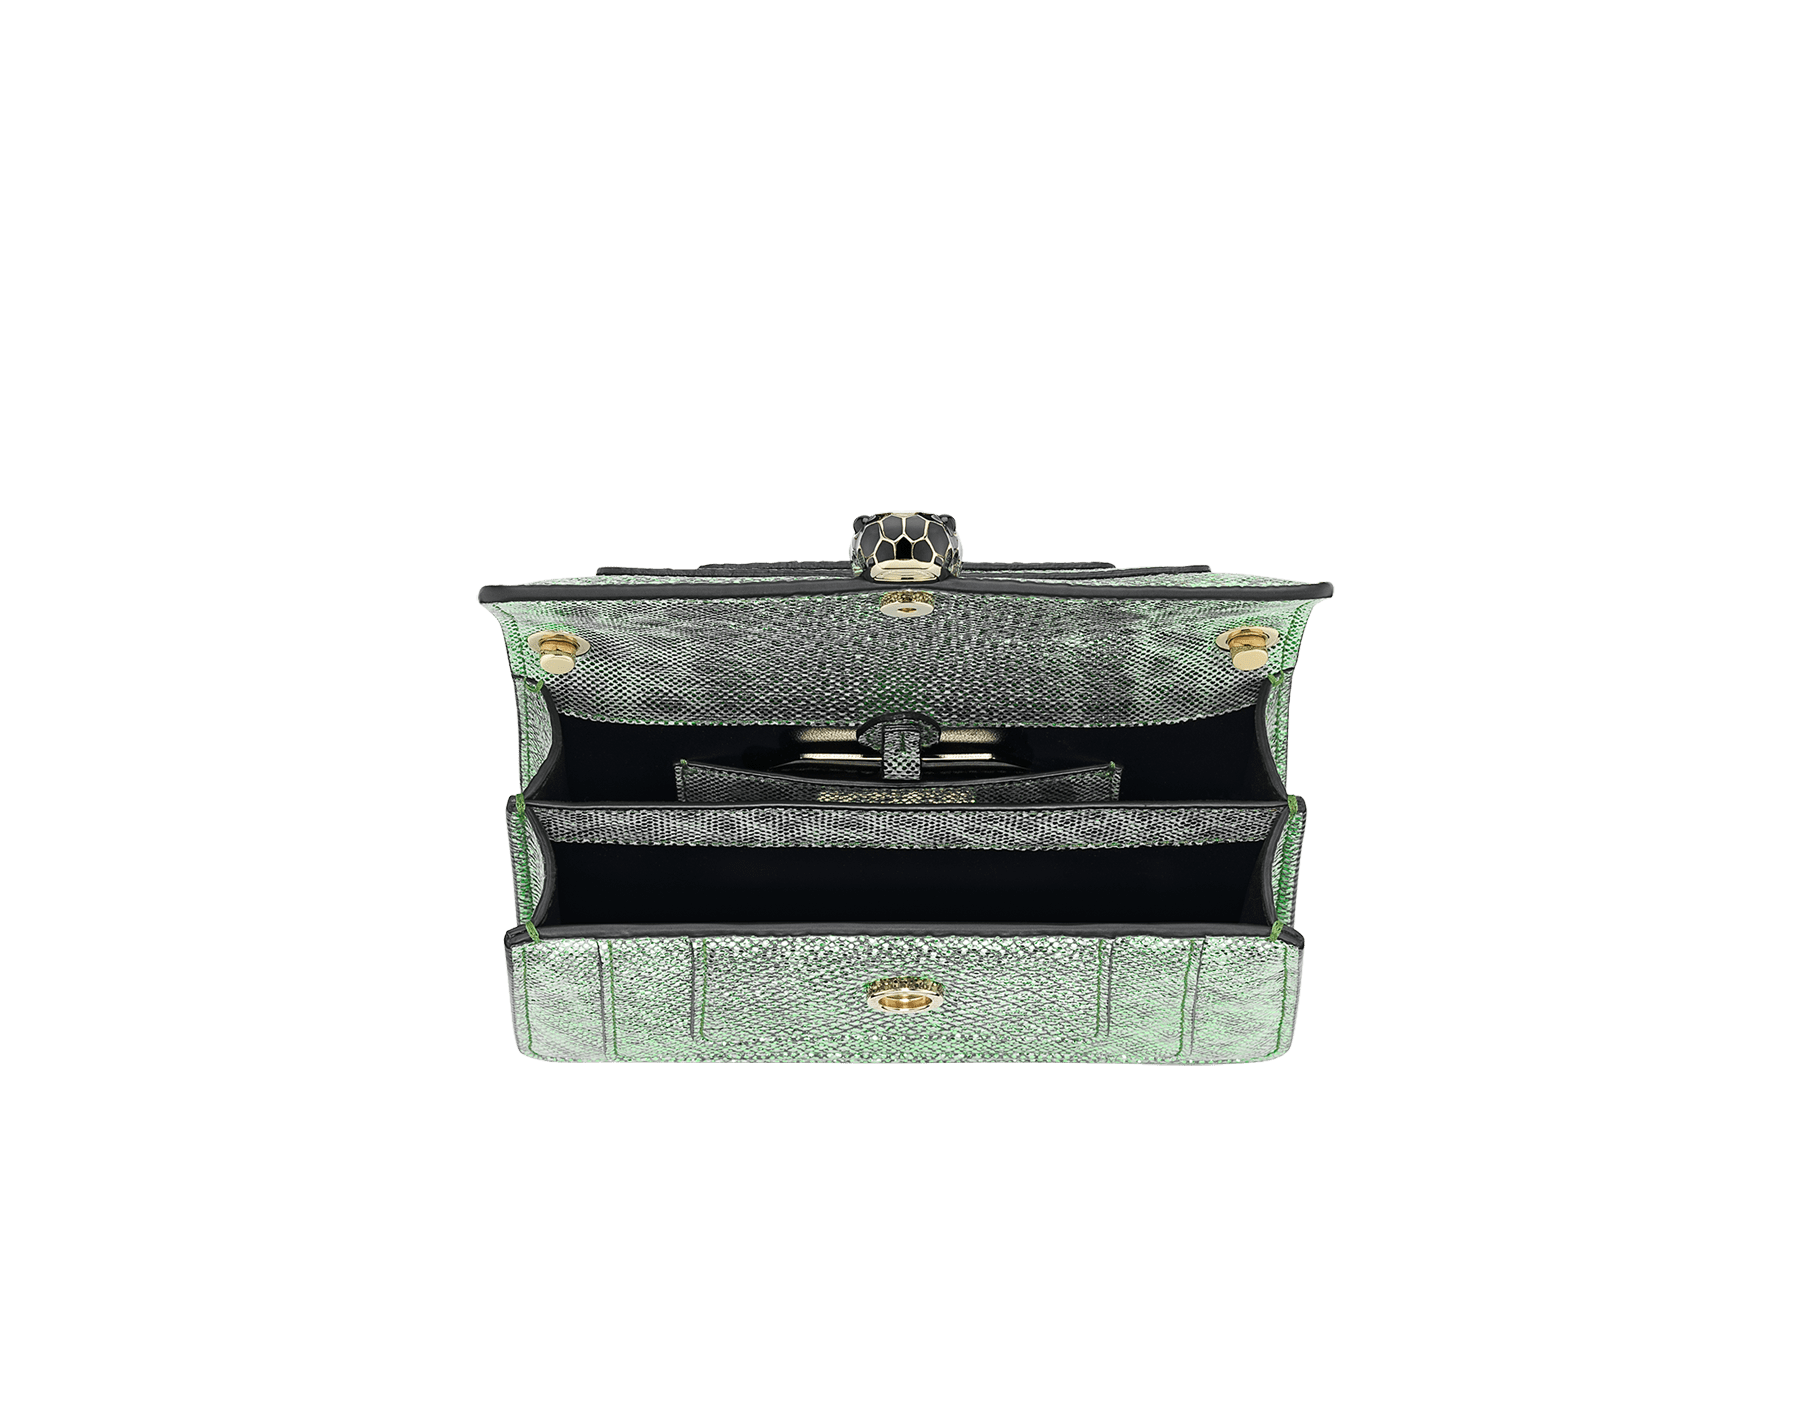 Serpenti Forever mini crossbody bag in white agate metallic karungskin. Brass light gold-plated snake head closure in black and white enamel, with black onyx eyes. 986-MK image 4